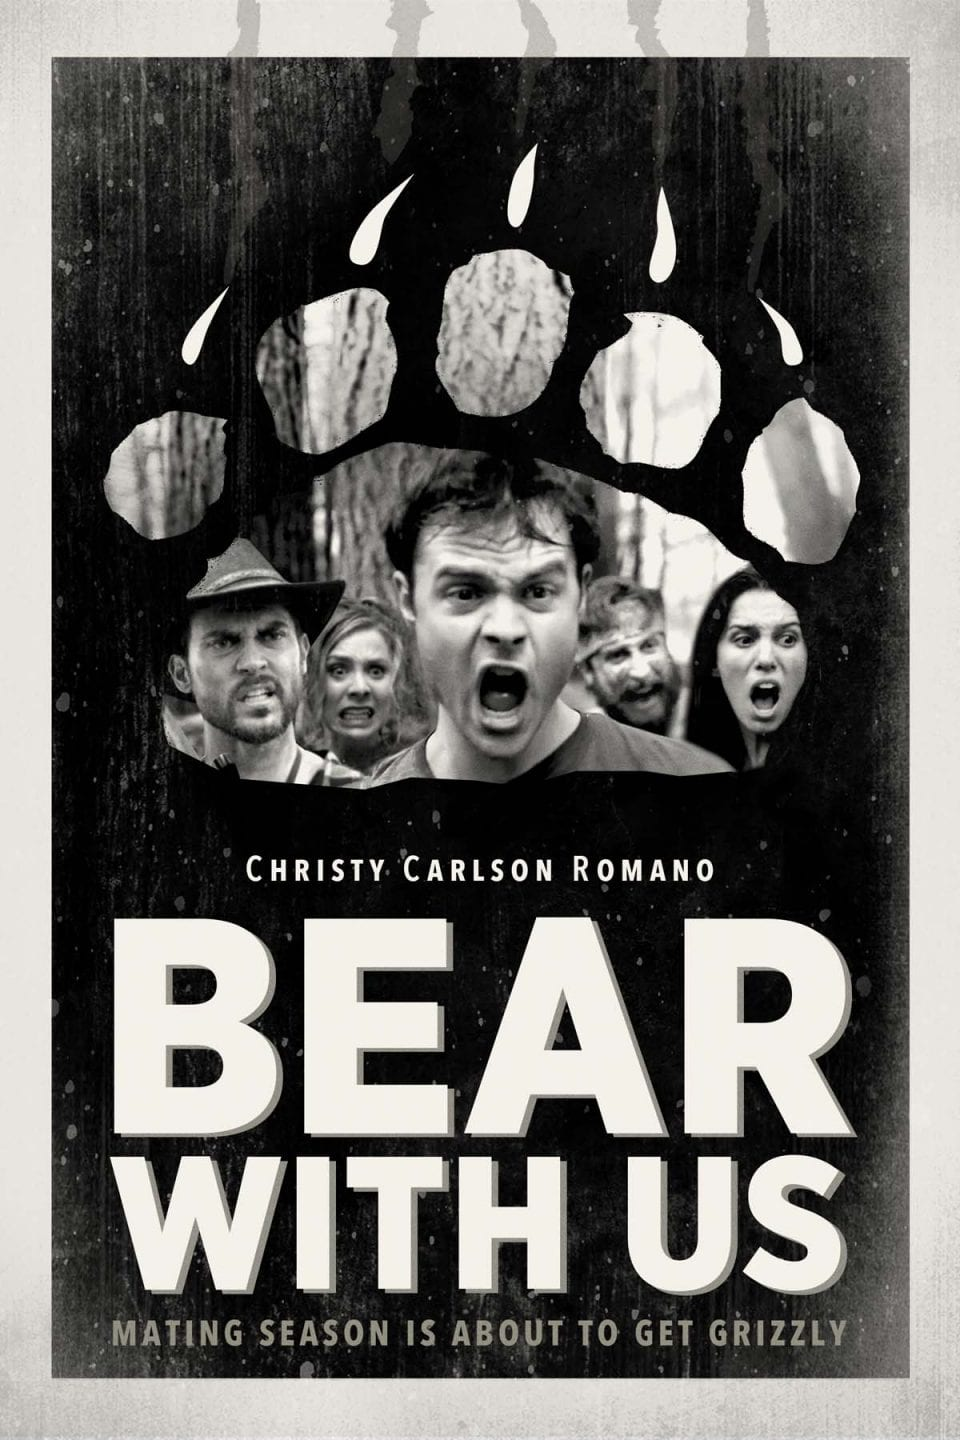 BearWithUs Premiere Poster 062117